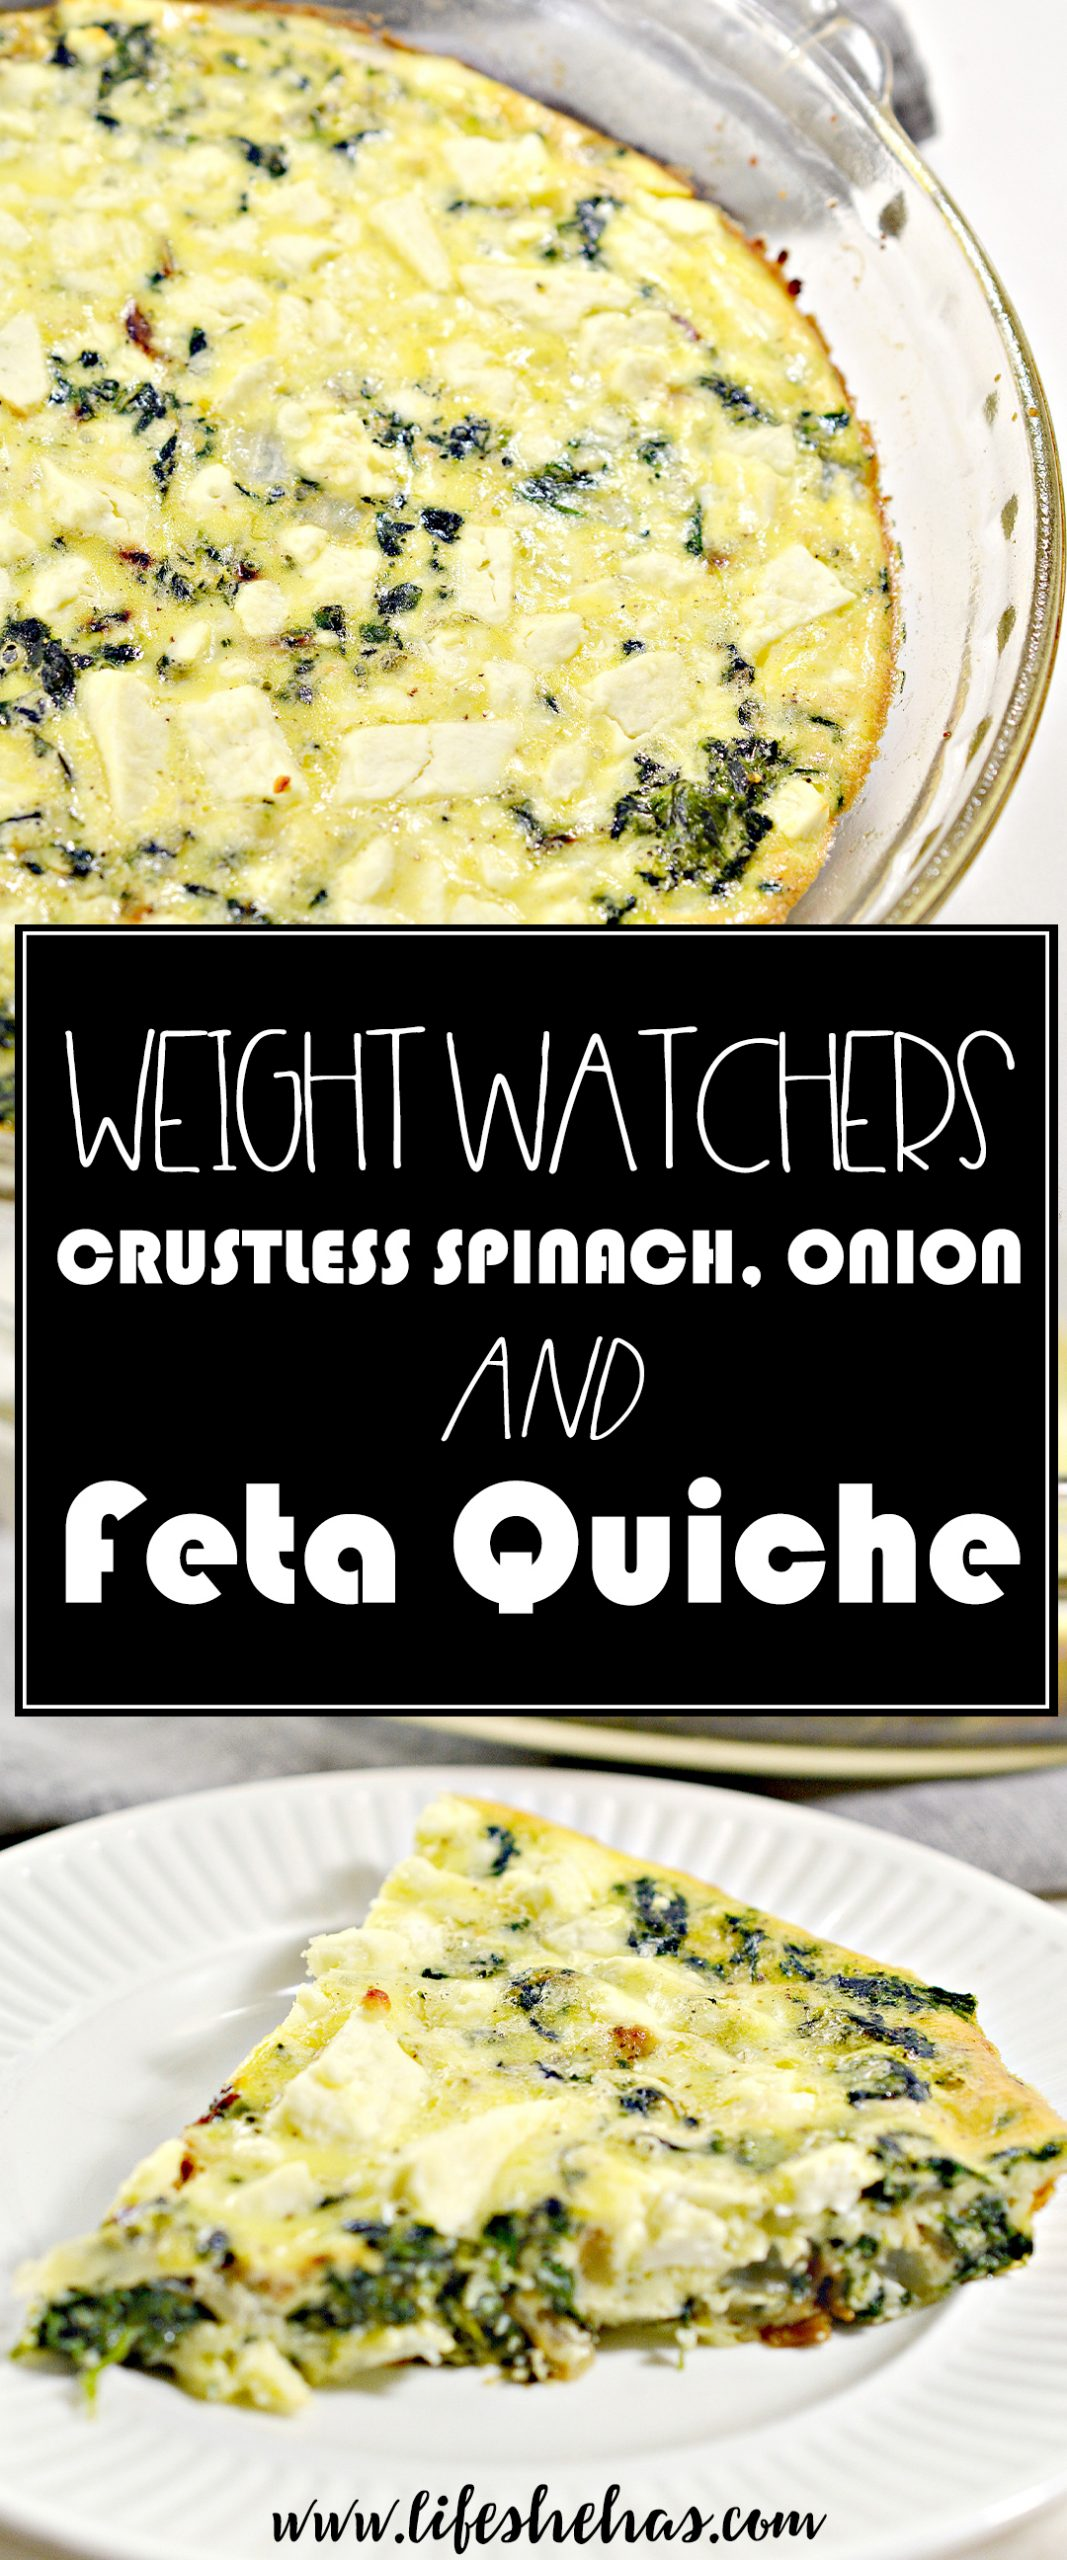 weight watchers crustless spinach onion and feta quiche pin